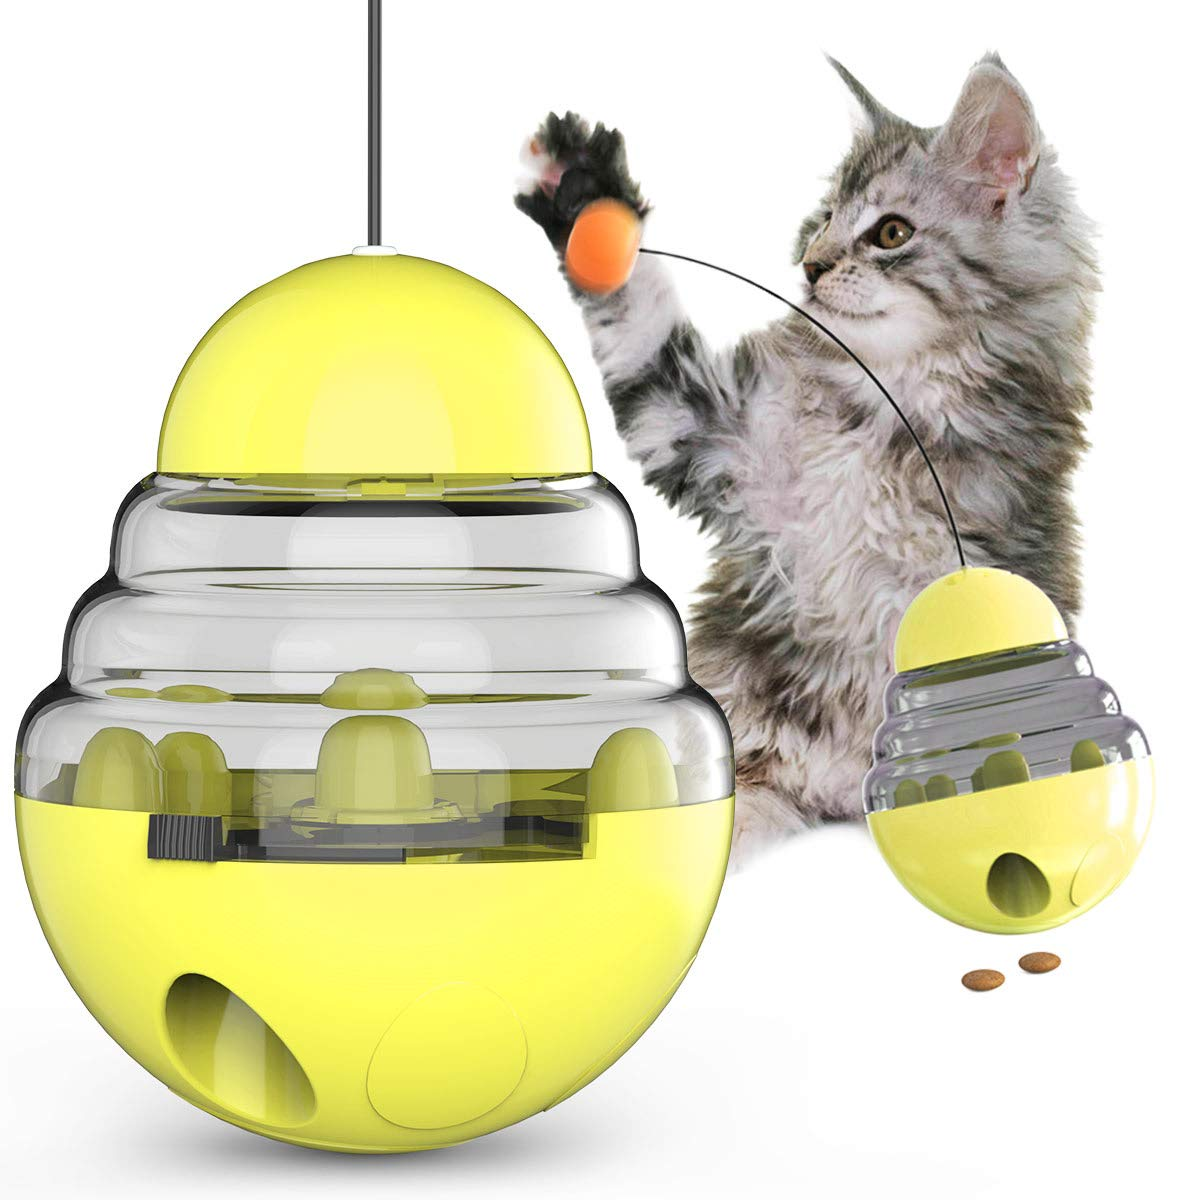 Cat Tumbler Toys Kitten Toy Kitty Supplies Interactive Spinning Track Ball for